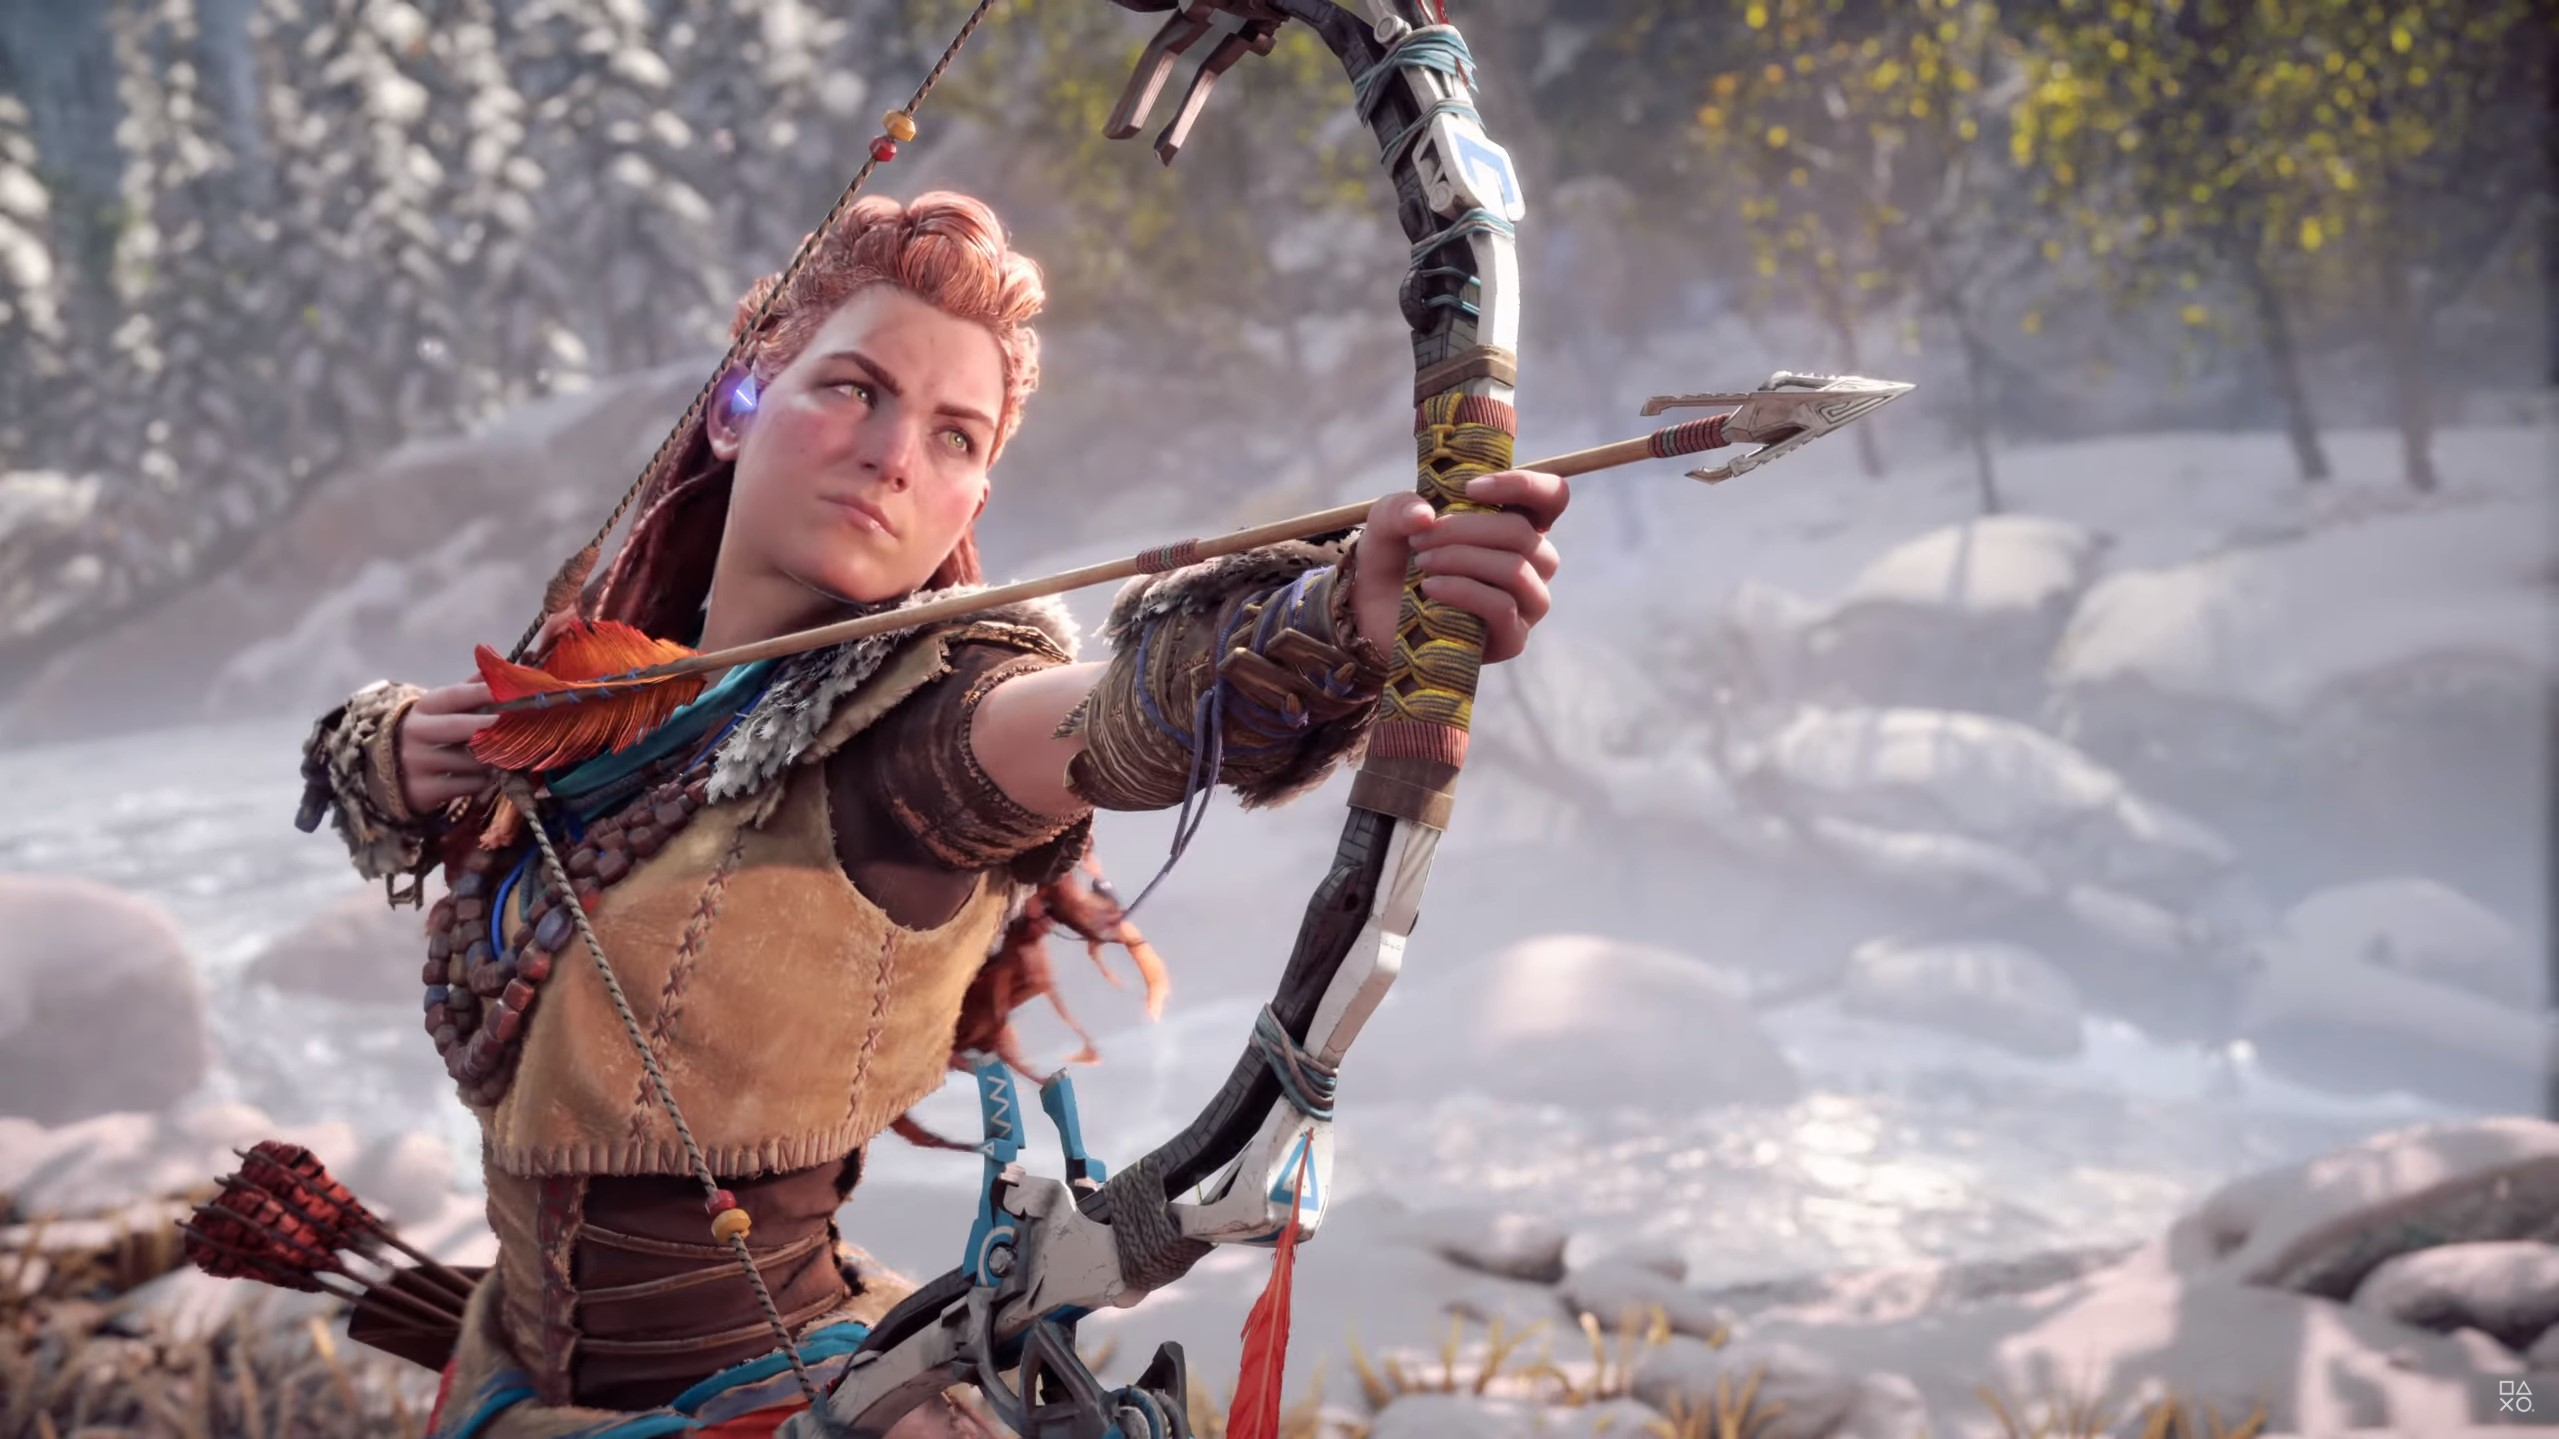 Ps5 Games Event Ps5 Reveal Horizon Zero Dawn 2 And Demon S Souls